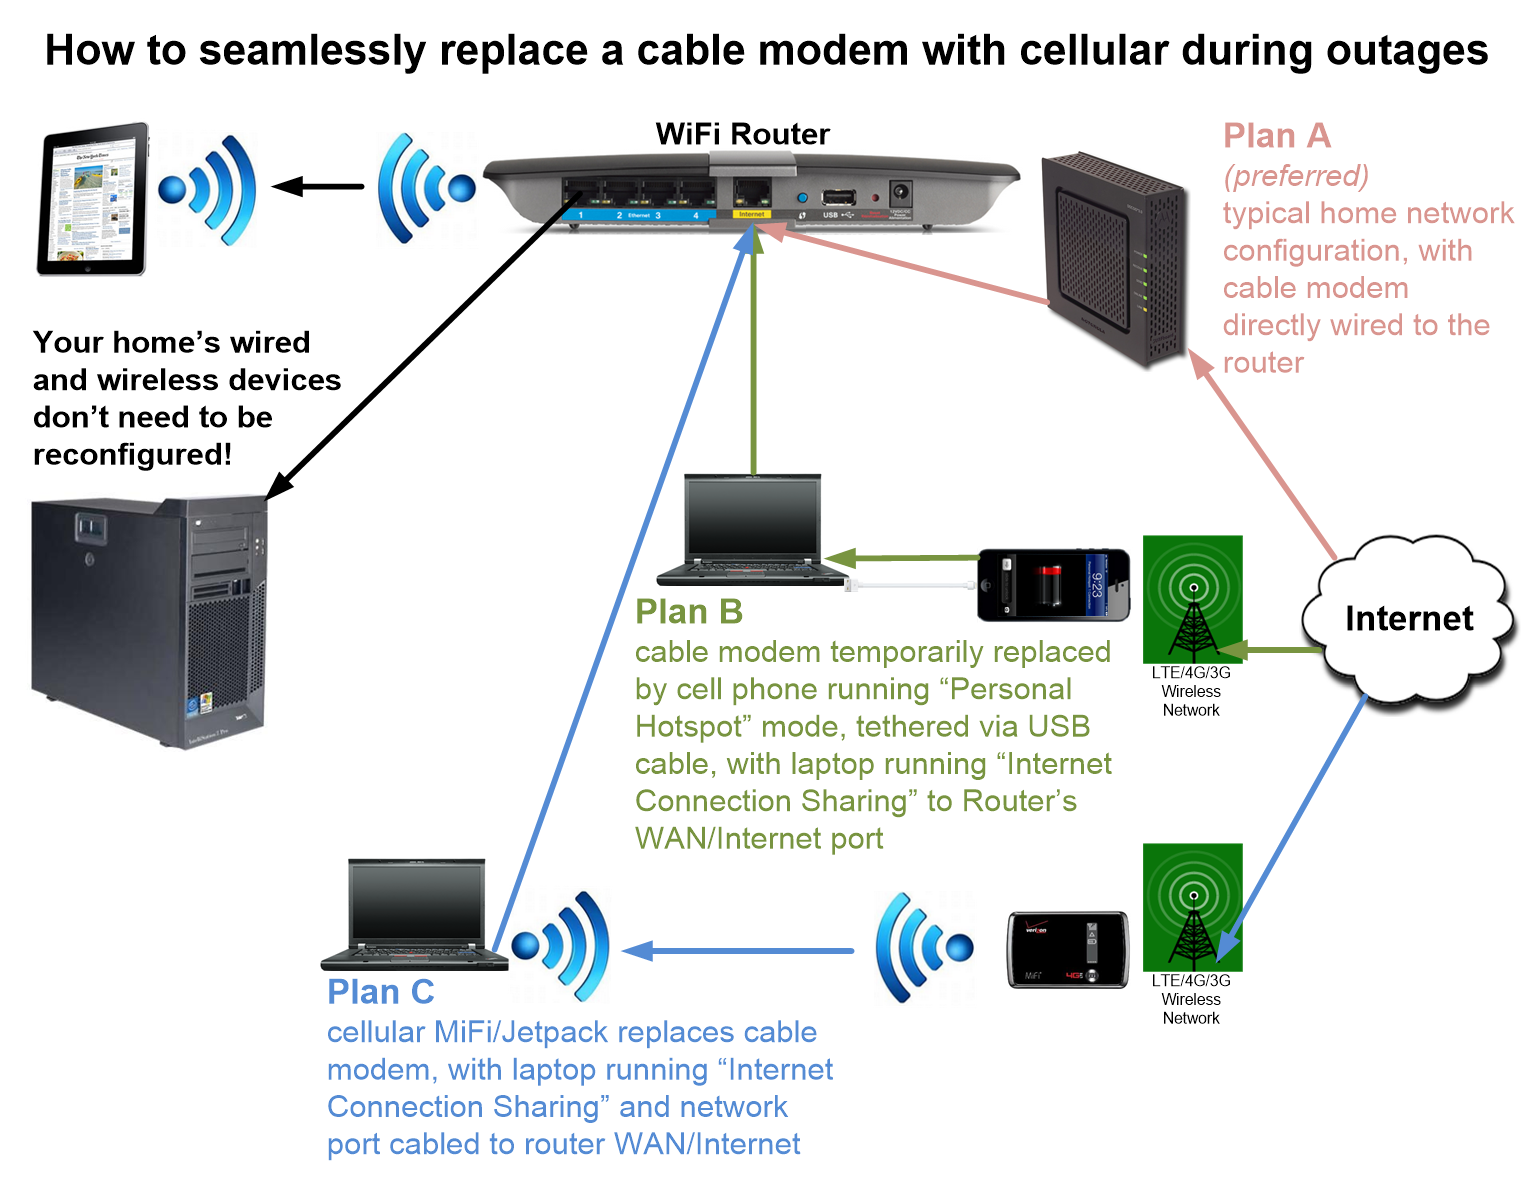 Home Wiring Cable Internet Diagrams Lan Network Diagram Networking Pfsense Motorola Modems D Link